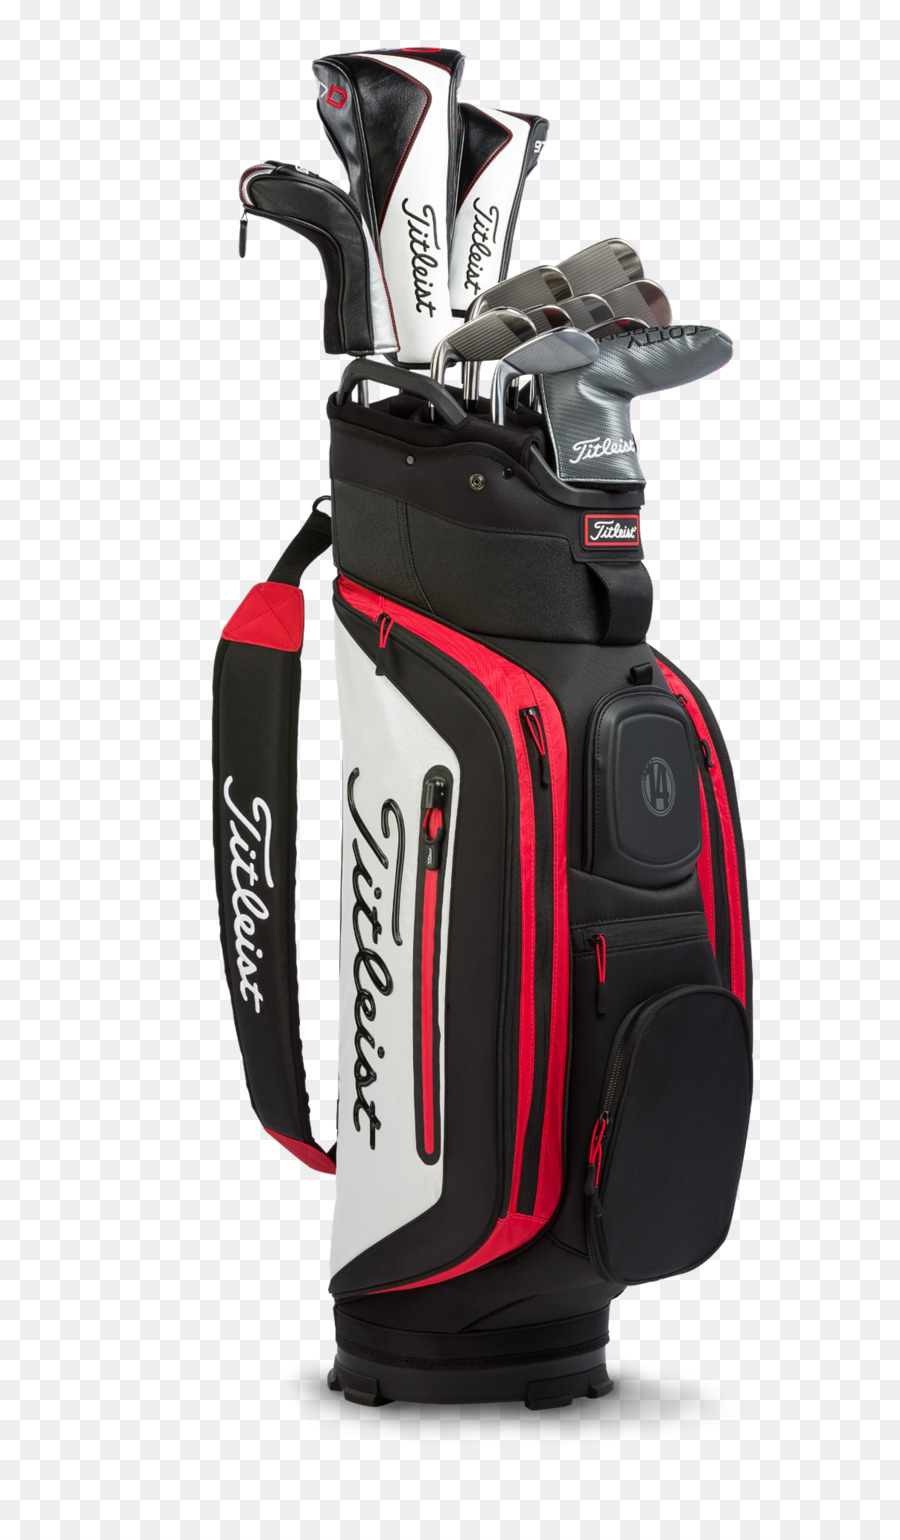 67ba8ecb5a5 Titleist StaDry Deluxe Waterproof Cart Bag 2018 - Black Red White Titleist  StaDry Lightweight Cart Bag Titleist Mid Staff Cart Bag Golf - titleist  golf ...